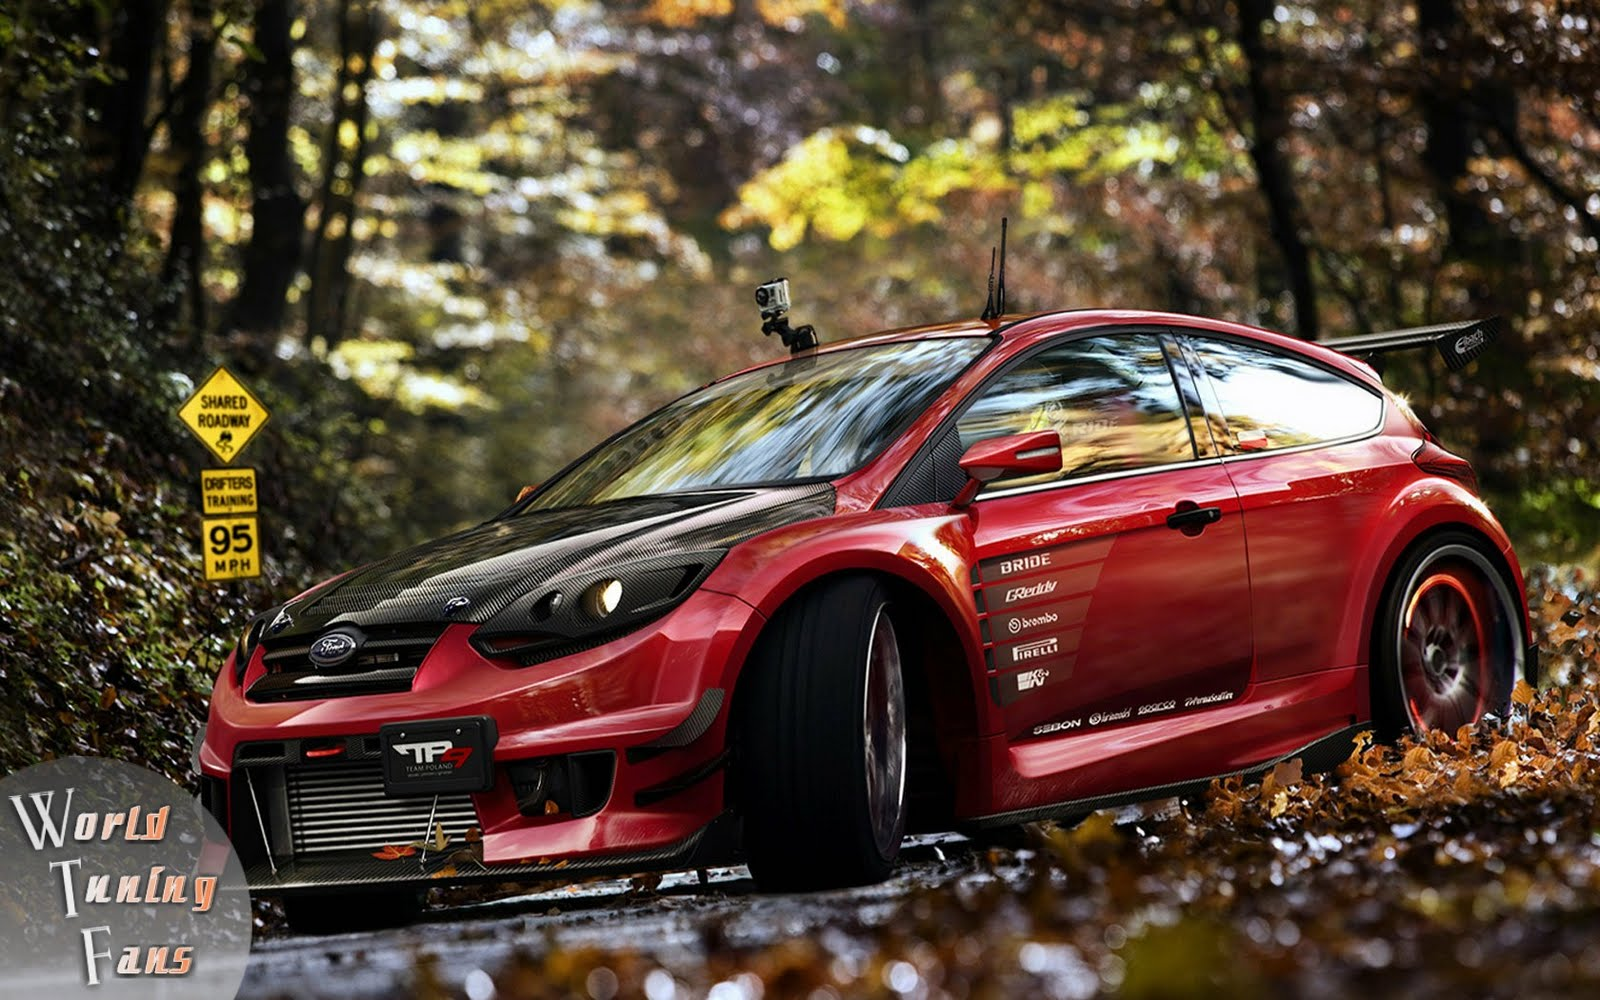 World Tuning Fans: Cool Car art collection, view more at ...